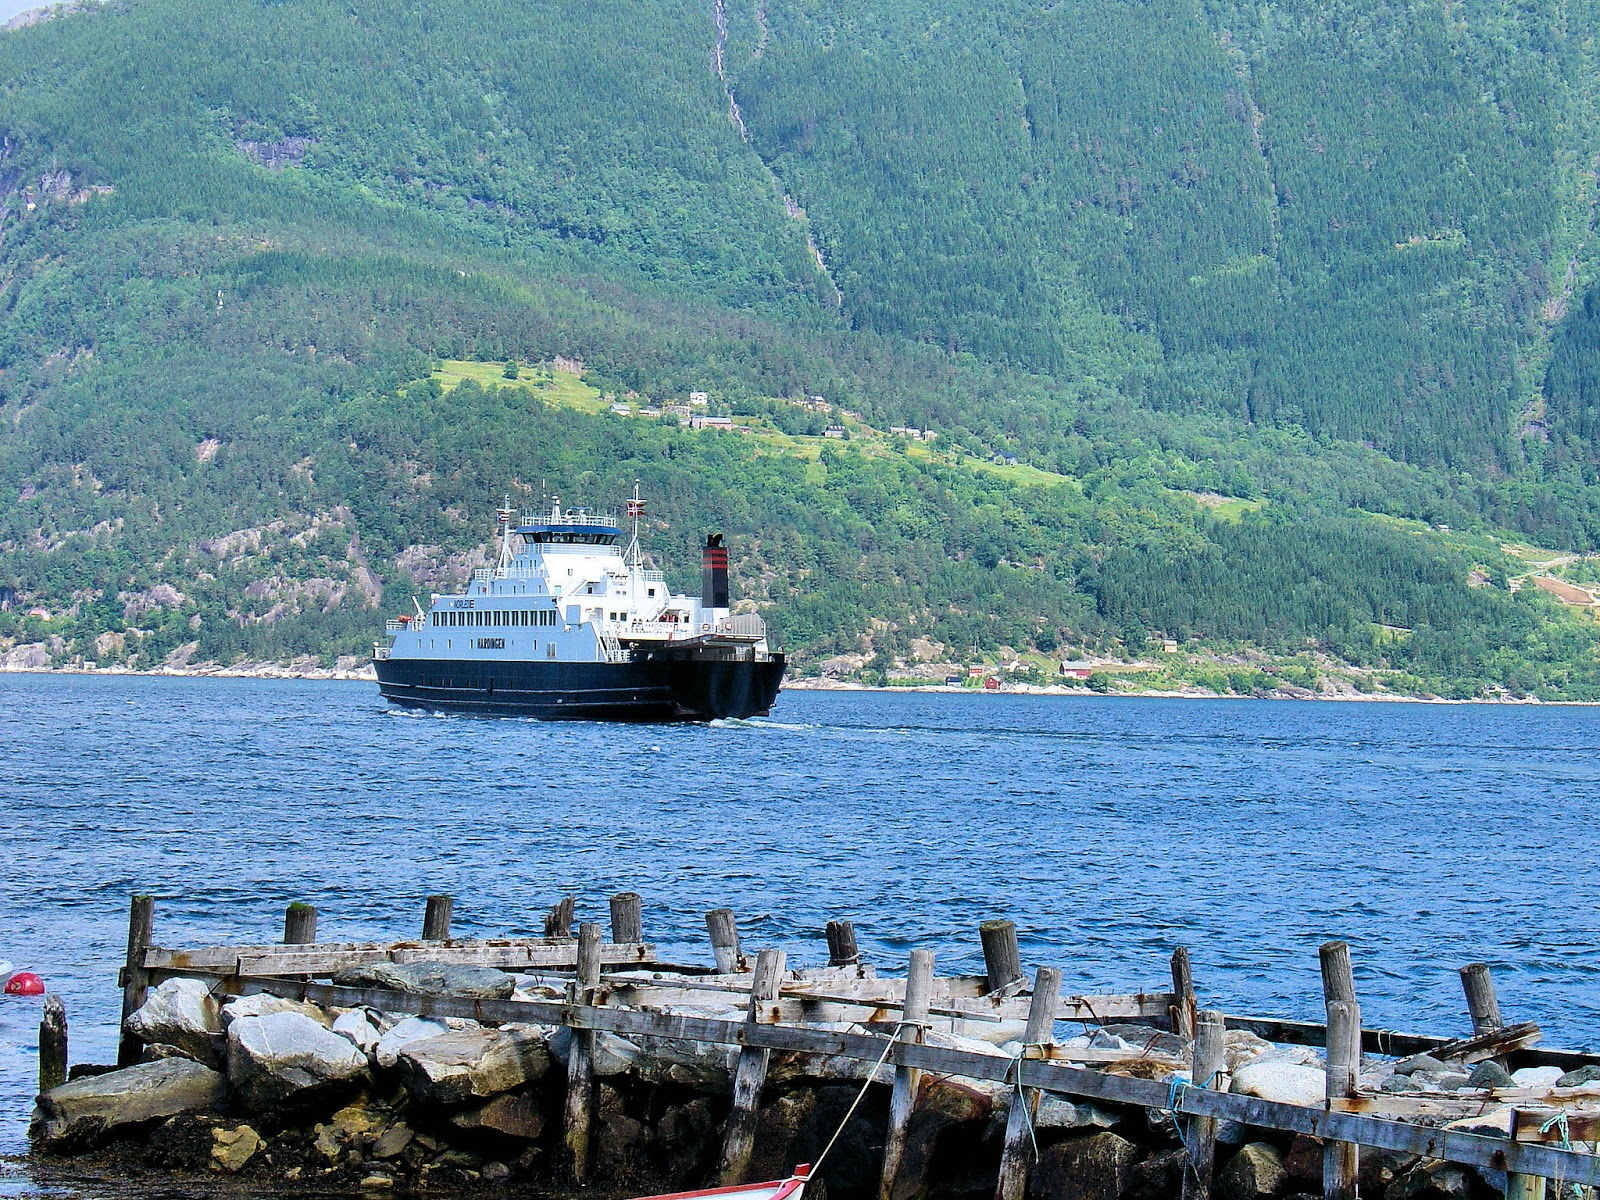 Our Hardangerfjord ferry just dropped us off in Utne, Norway.